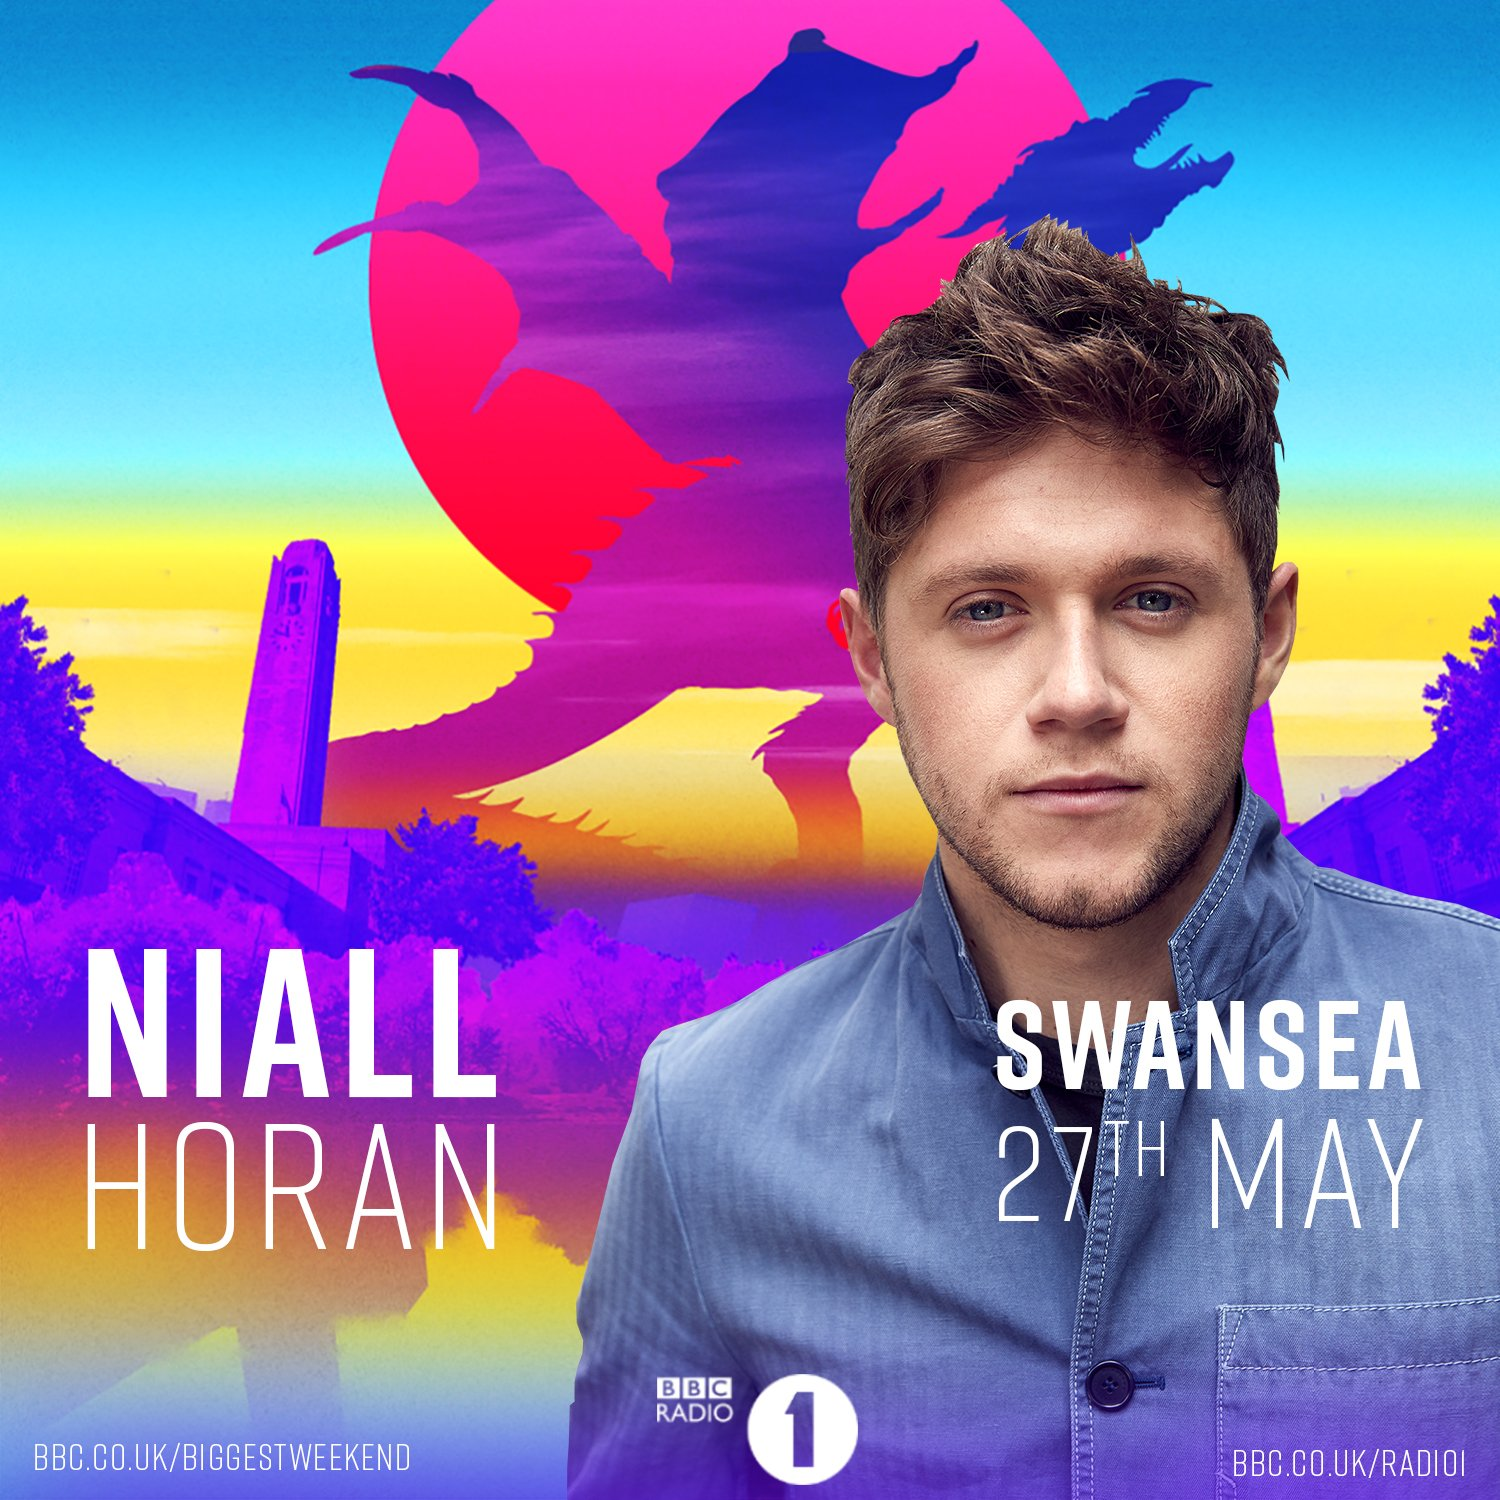 Swansea , see you in May at @bbcr1's #BiggestWeekend https://t.co/7qp5V2a9mz